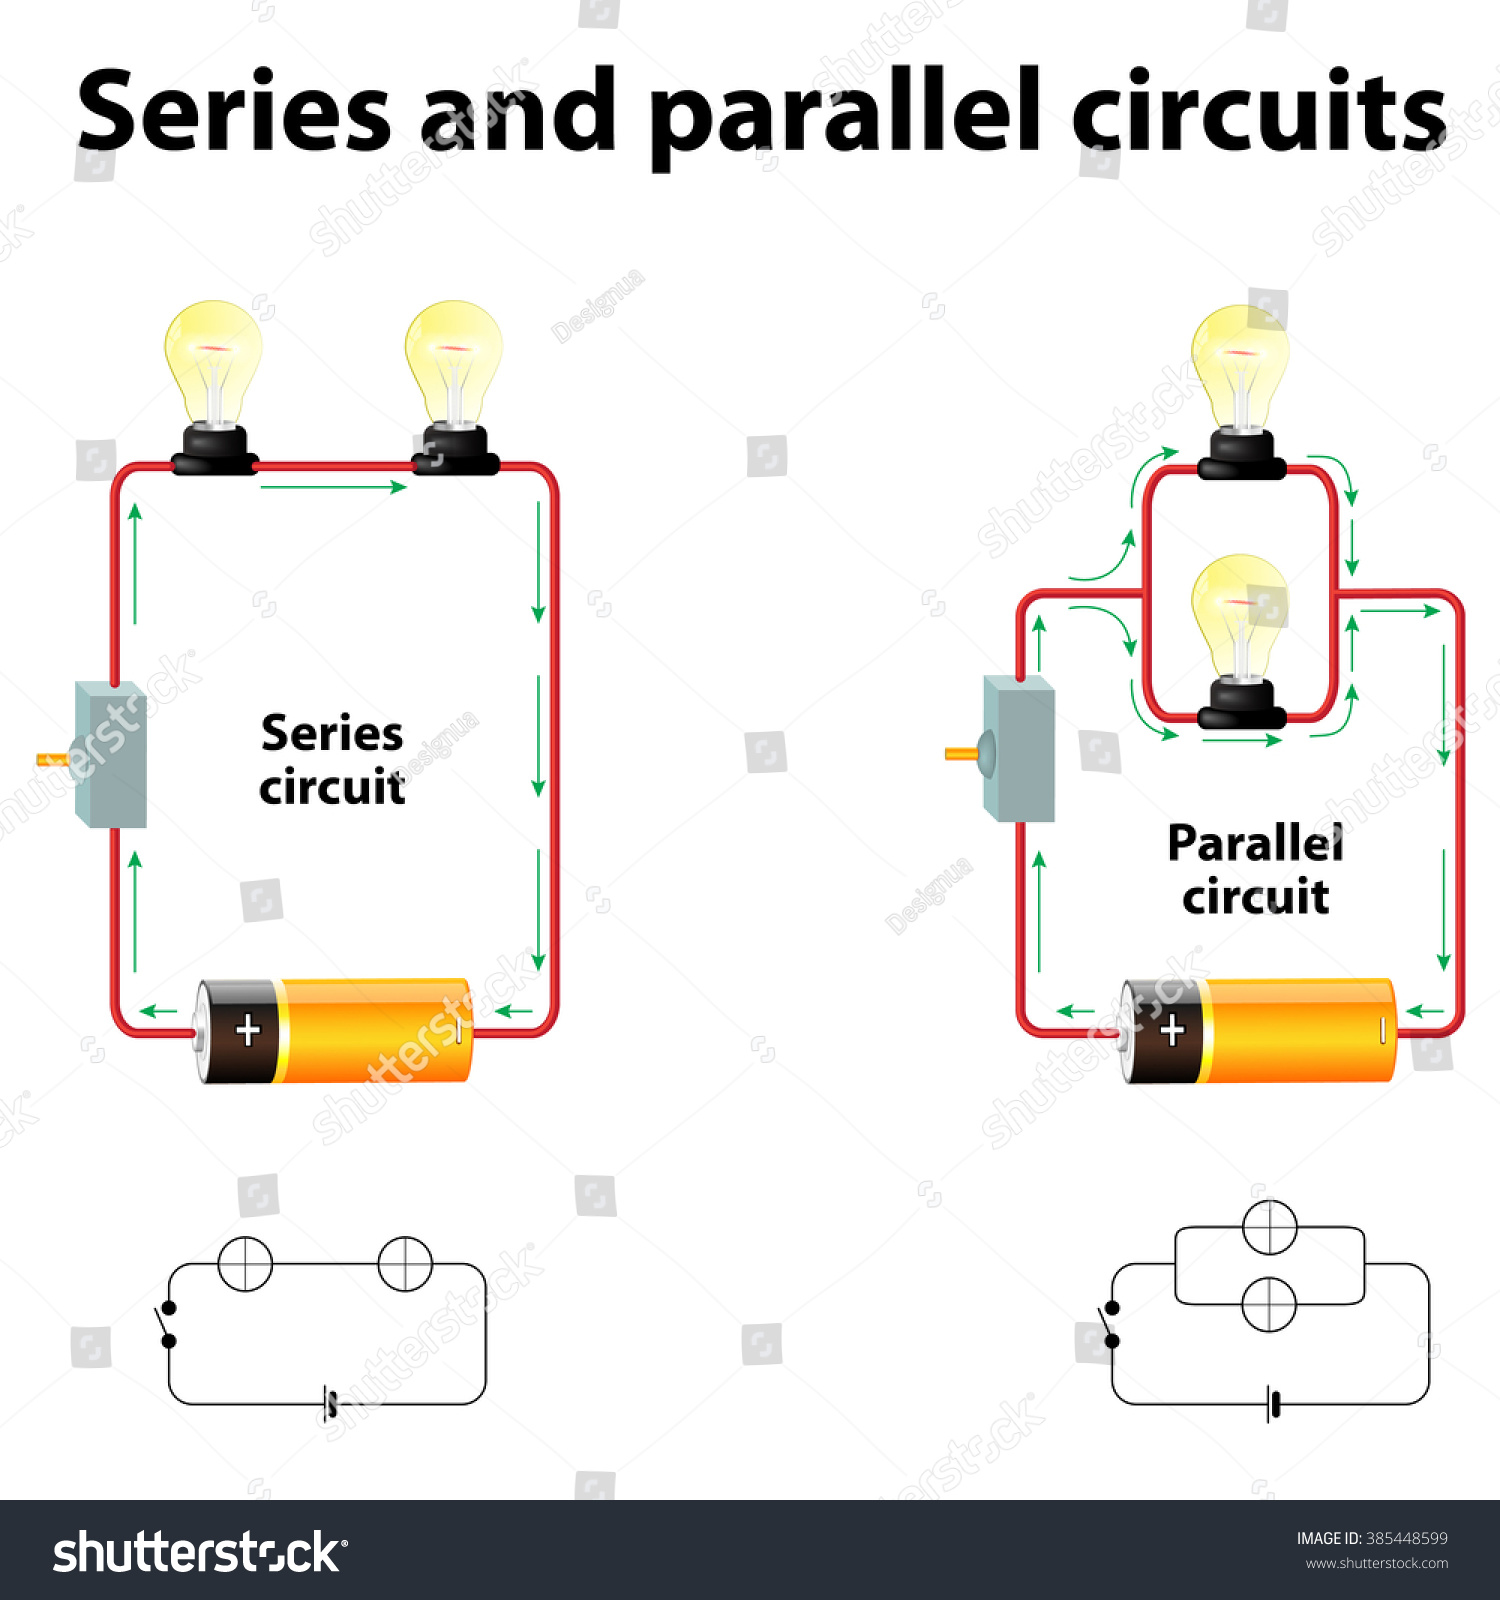 Electric Circuit Parallel Connection Wiring Diagram And Ebooks Series Solver Circuits Stock Vector Royalty Free 385448599 Rh Shutterstock Com Resistor Board Calculator